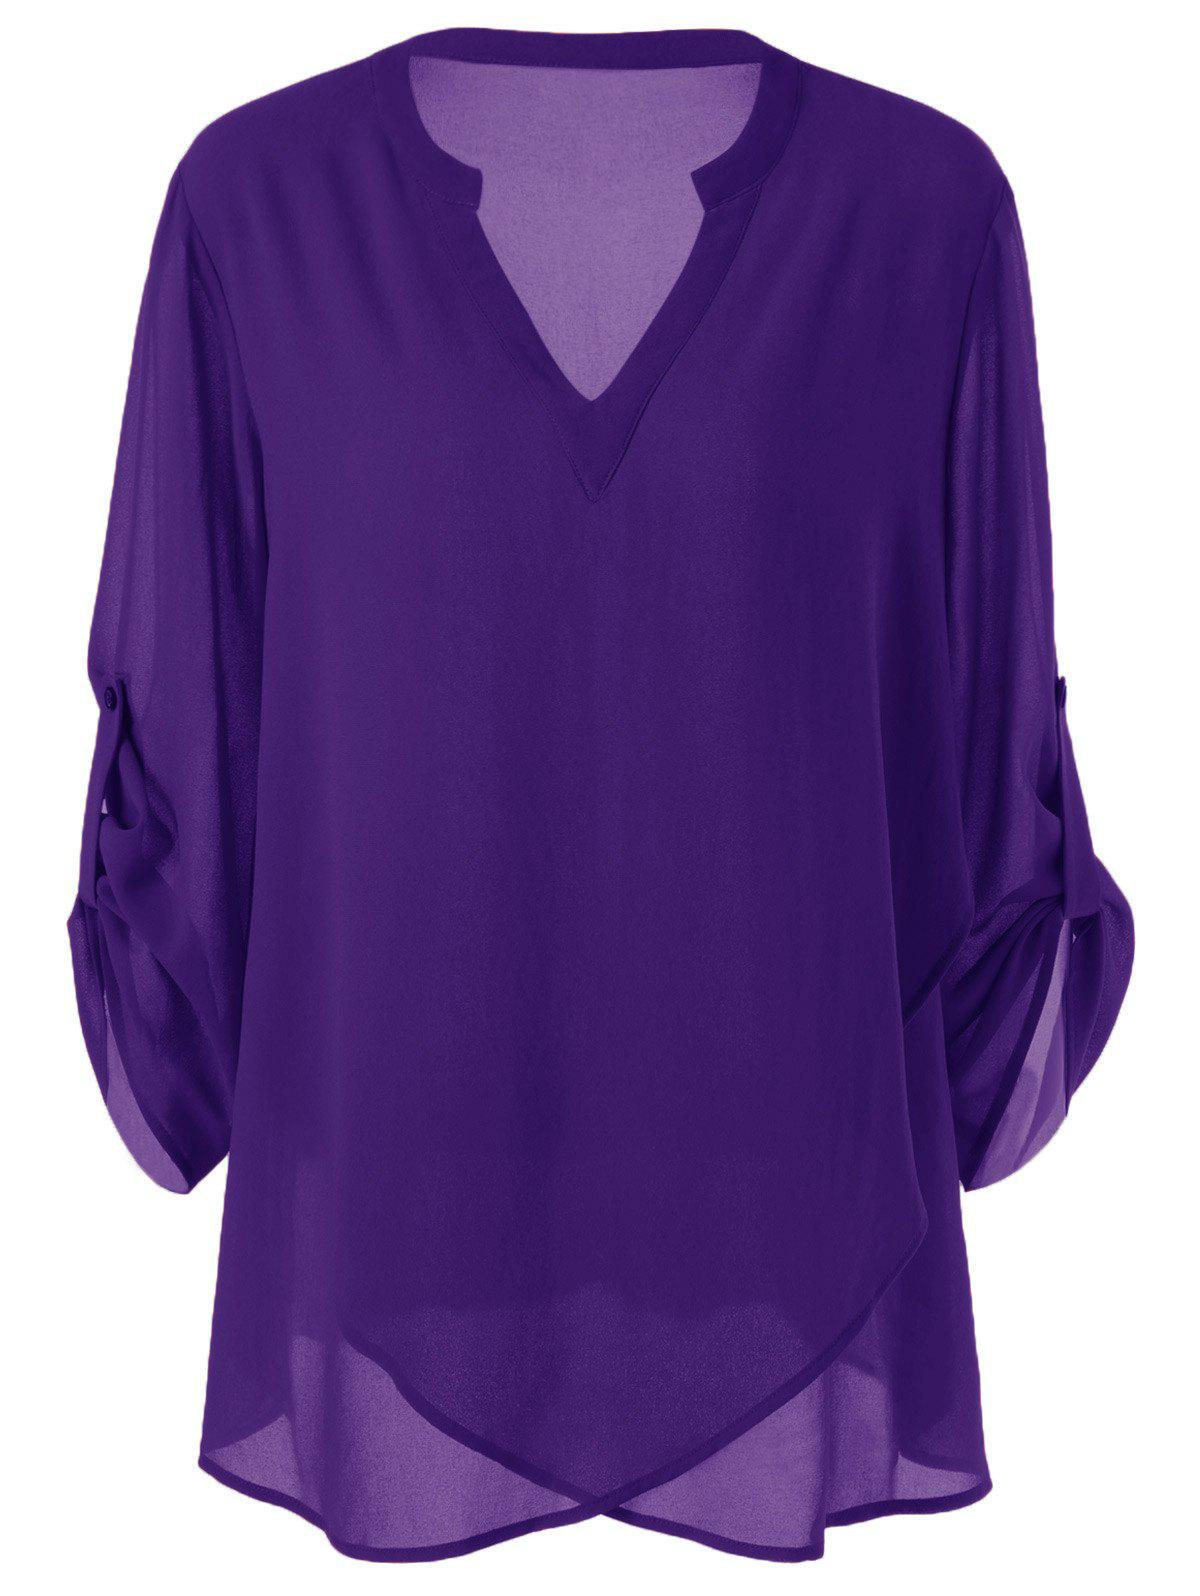 Plus Size Split-Neck Adjustable Sleeve BlouseWOMEN<br><br>Size: 3XL; Color: PURPLE; Material: Polyester; Shirt Length: Long; Sleeve Length: Full; Collar: V-Neck; Style: Casual; Season: Fall,Spring,Summer; Pattern Type: Solid; Weight: 0.3400kg; Package Contents: 1 x Blouse;